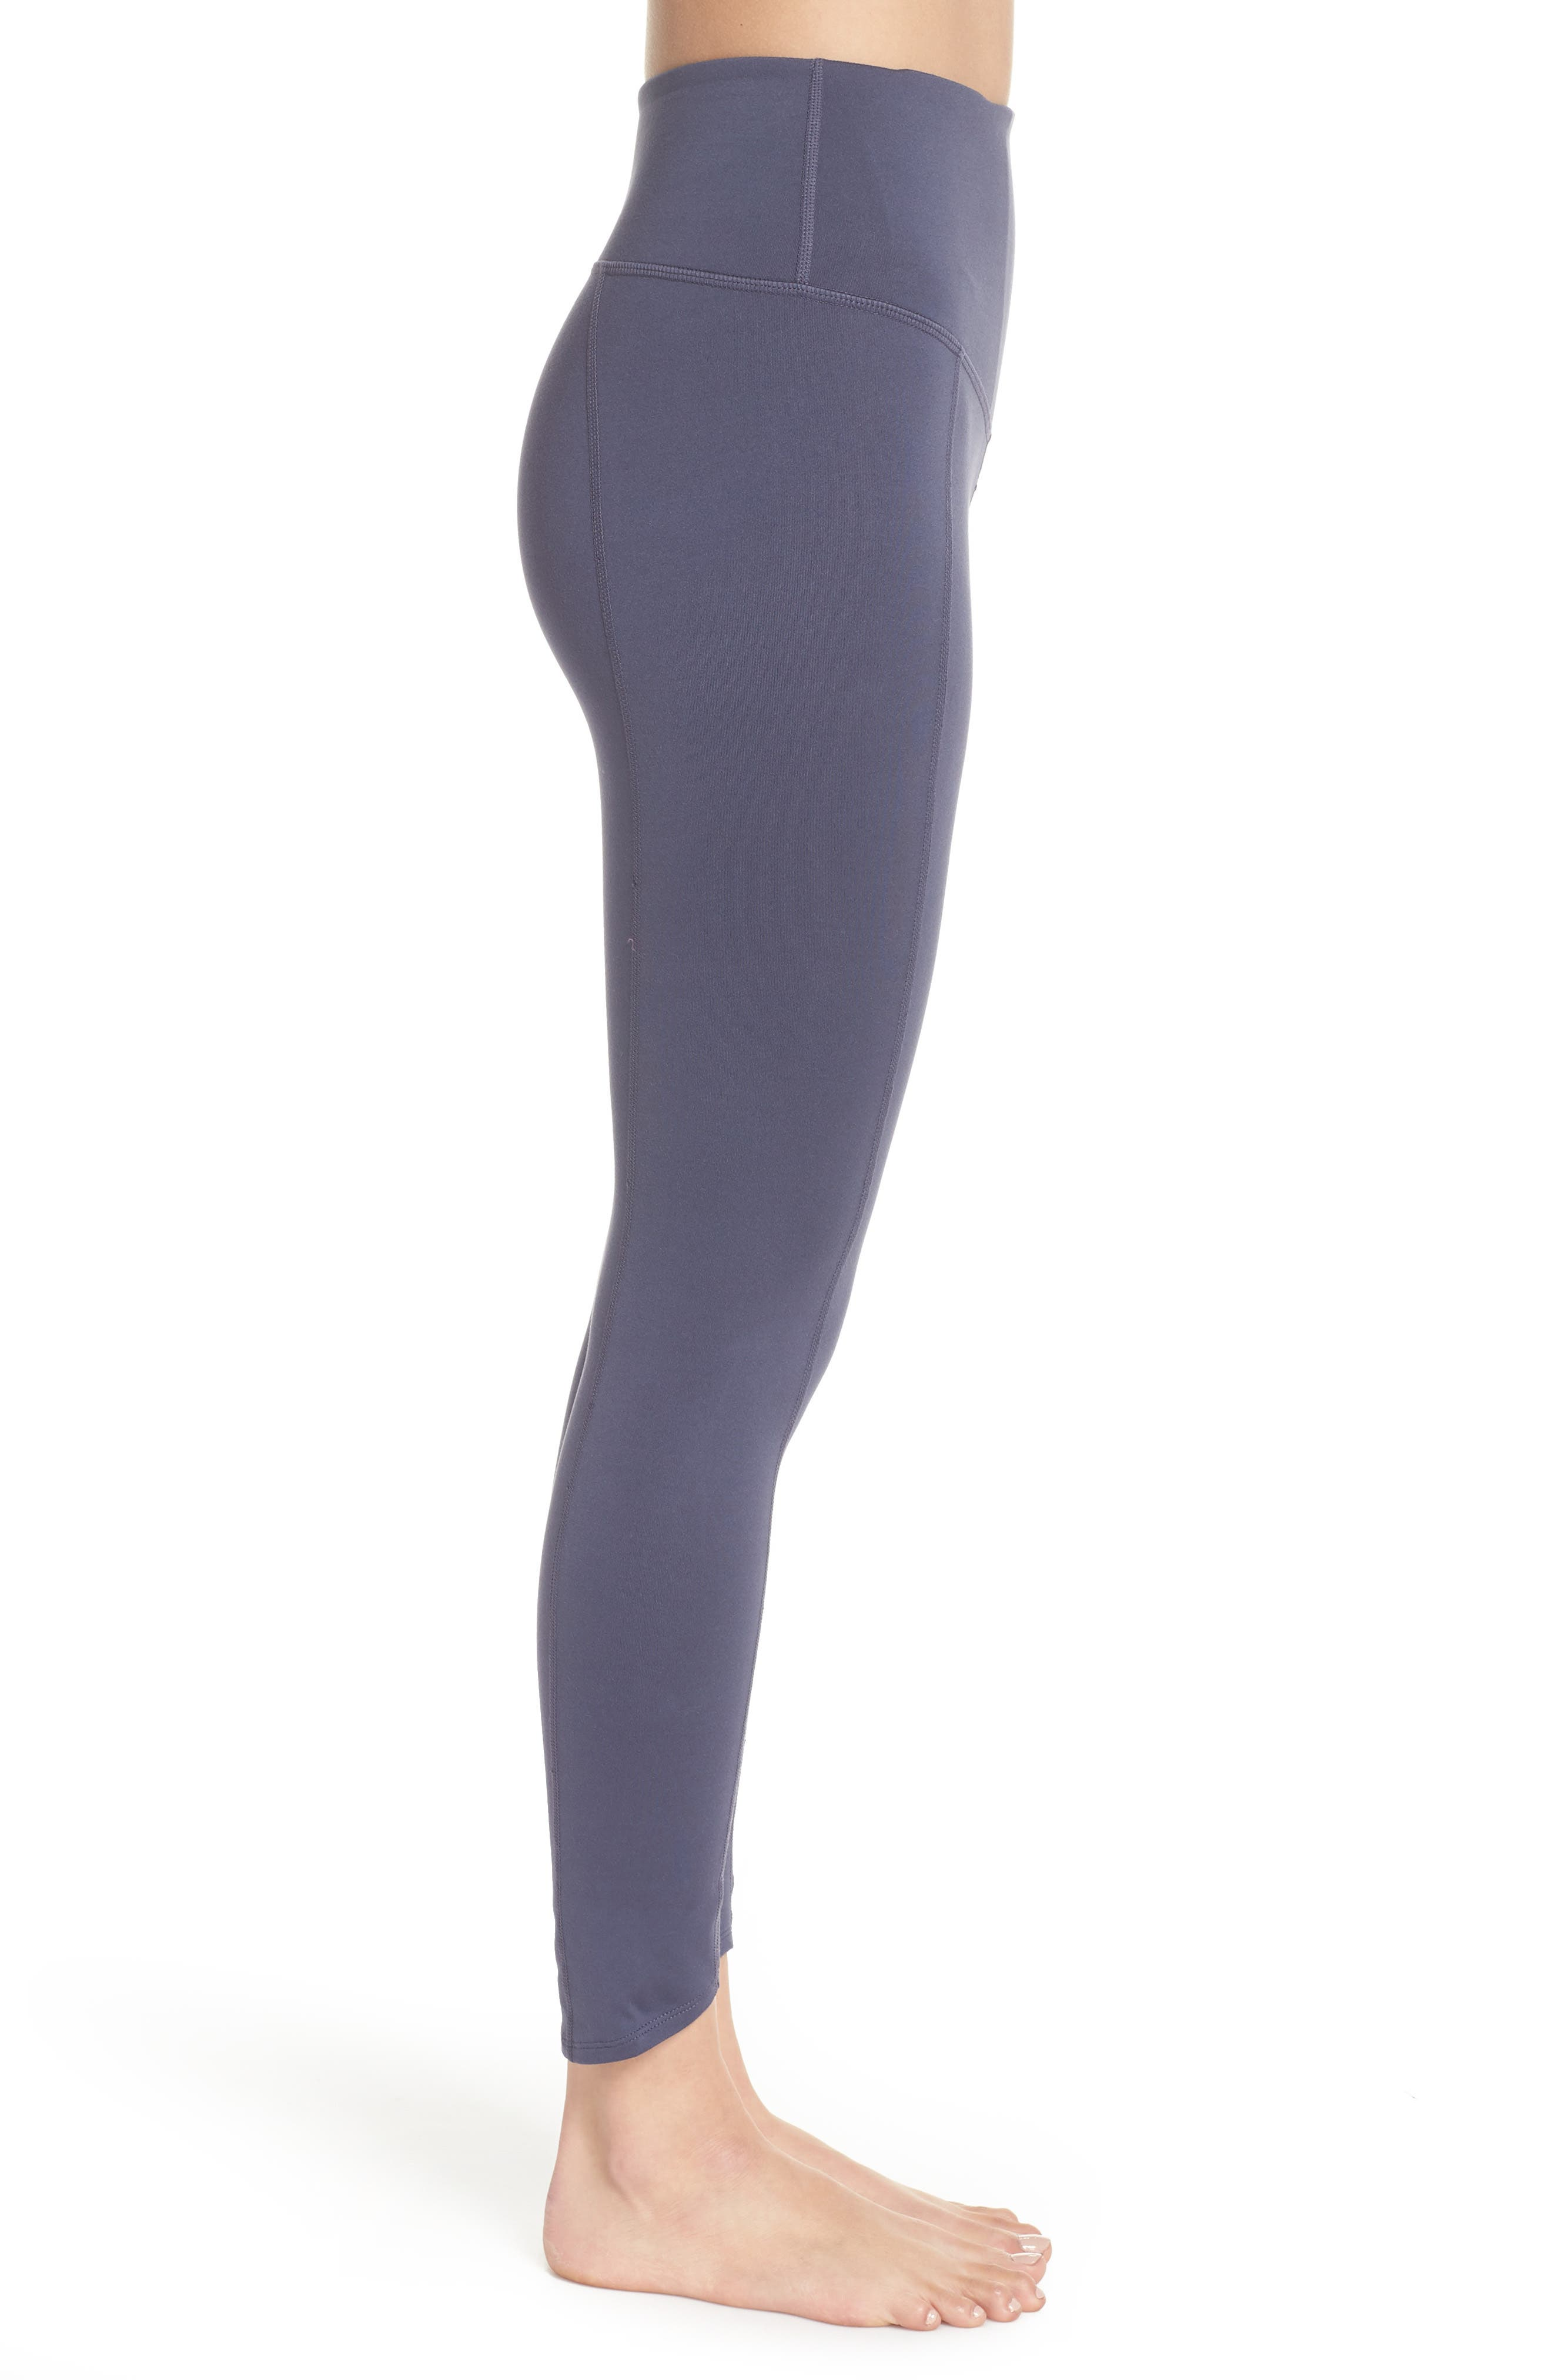 Refocus Recycled High Waist Midi Leggings,                             Alternate thumbnail 3, color,                             021